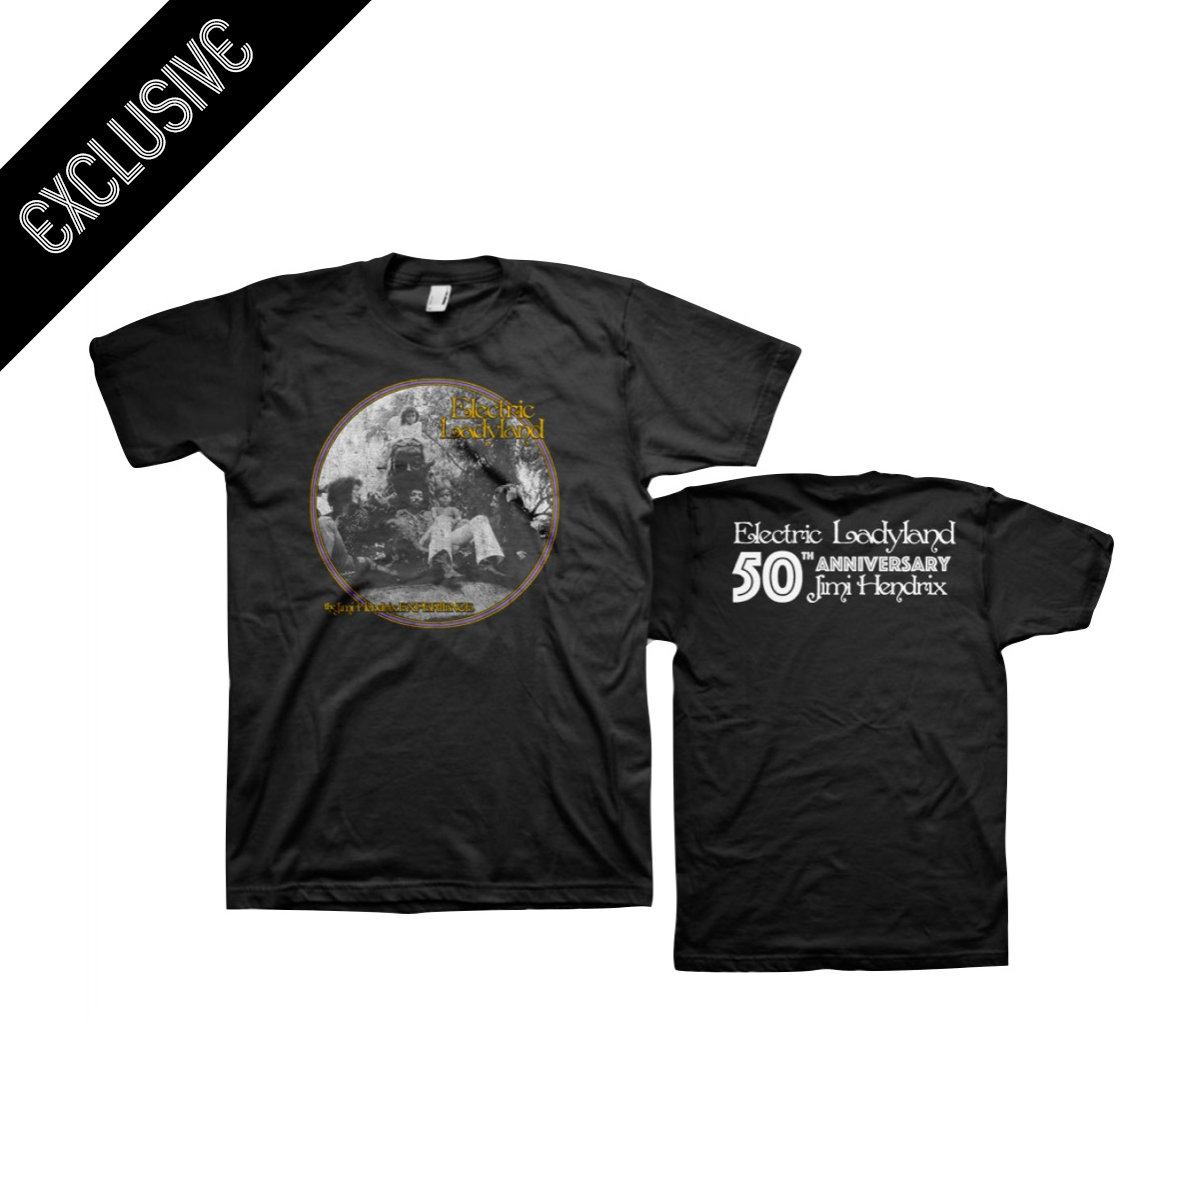 Jimi Hendrix Experience - Electric Ladyland 50th Anniversary T-shirt